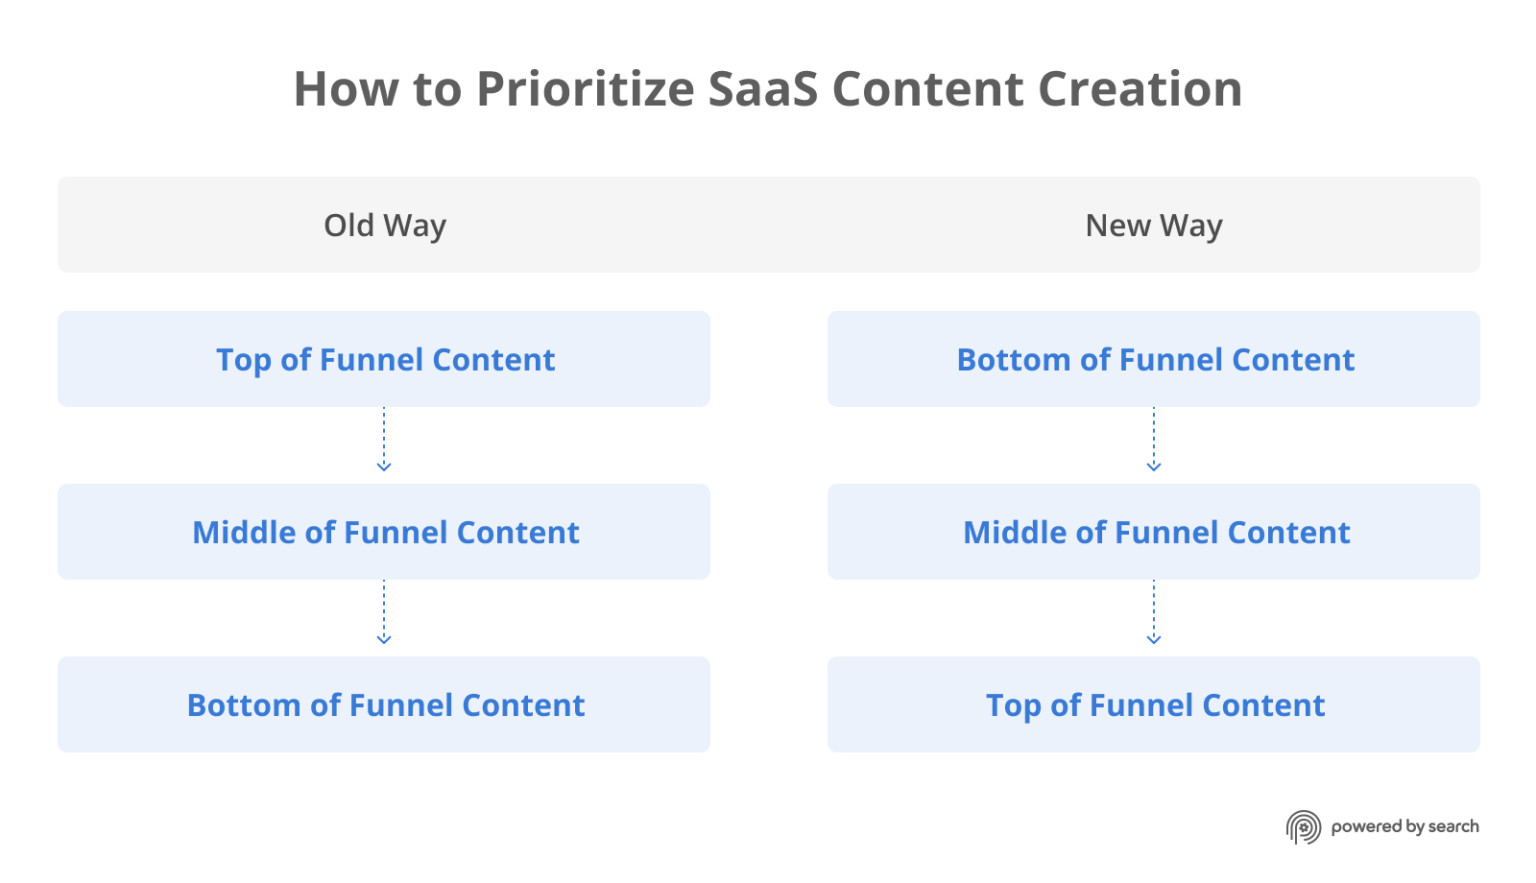 SaaS content in B2B SaaS Demand Generation: Old Way: Top, Middle, Bottom; New Way: Bottom, Middle, Top